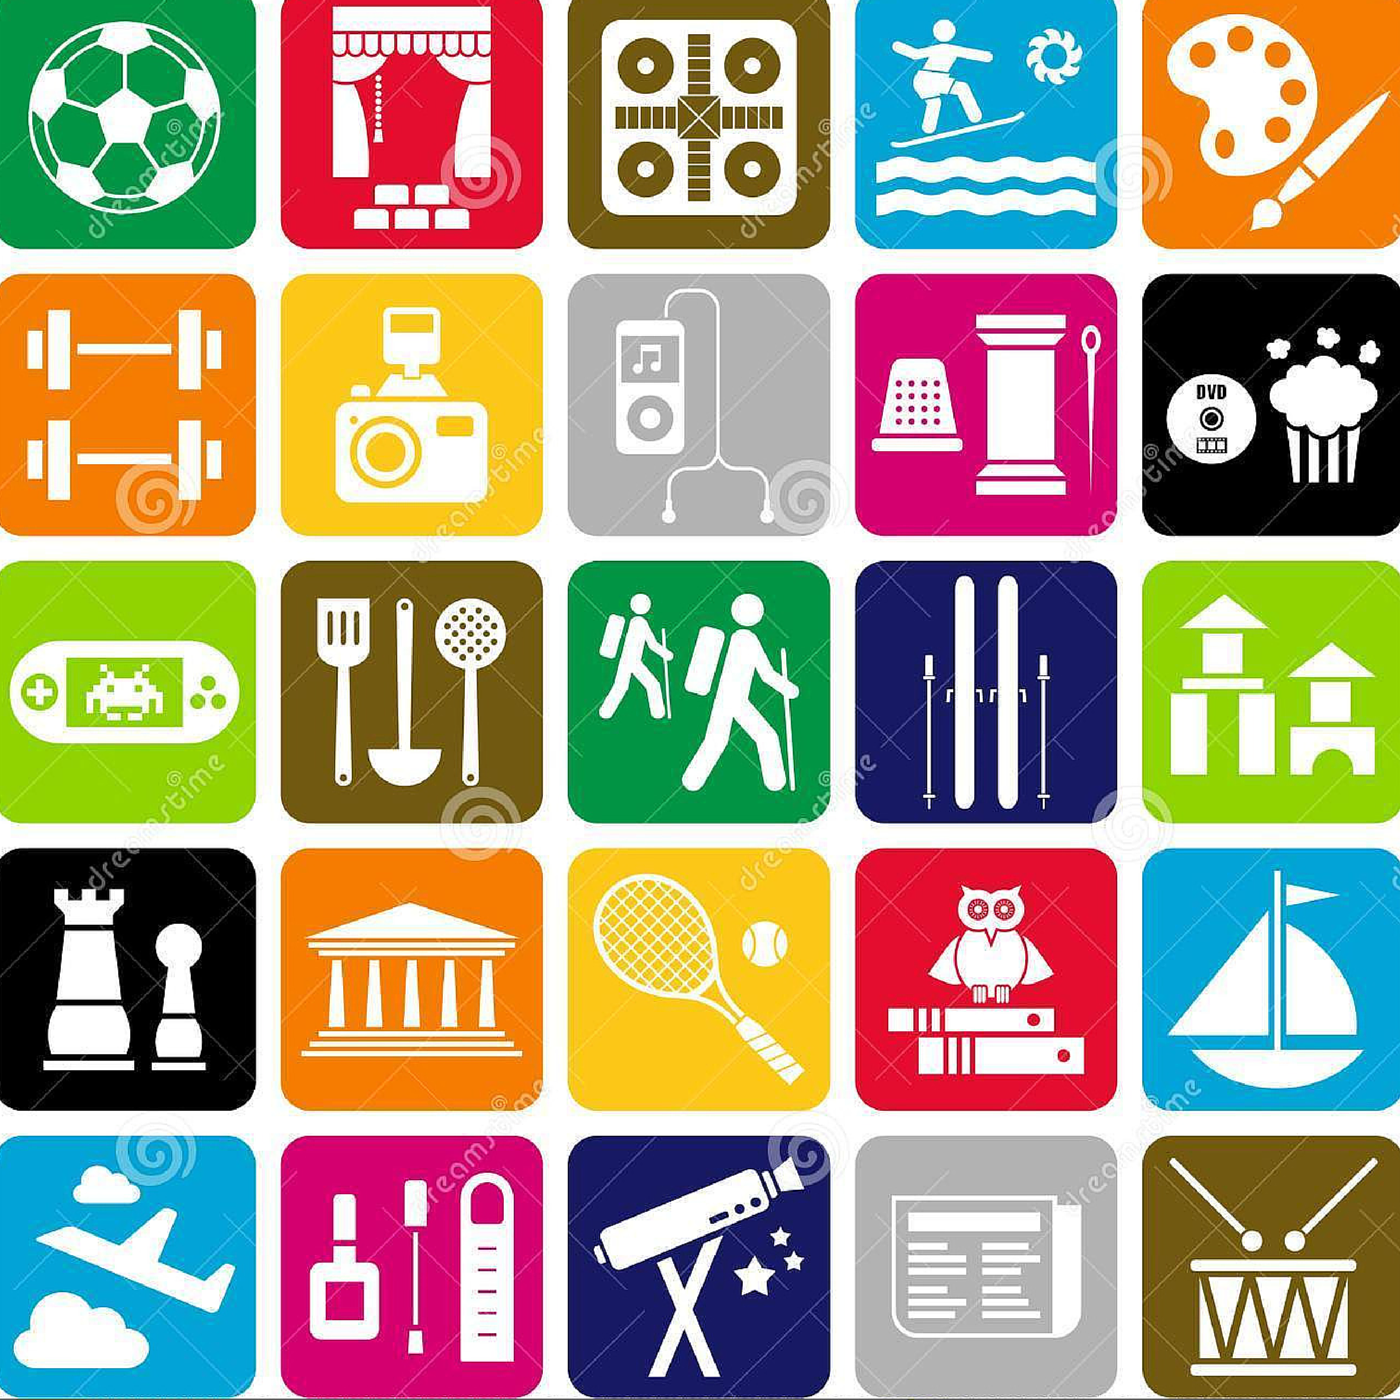 Hobbies And Interests PNG - 49892